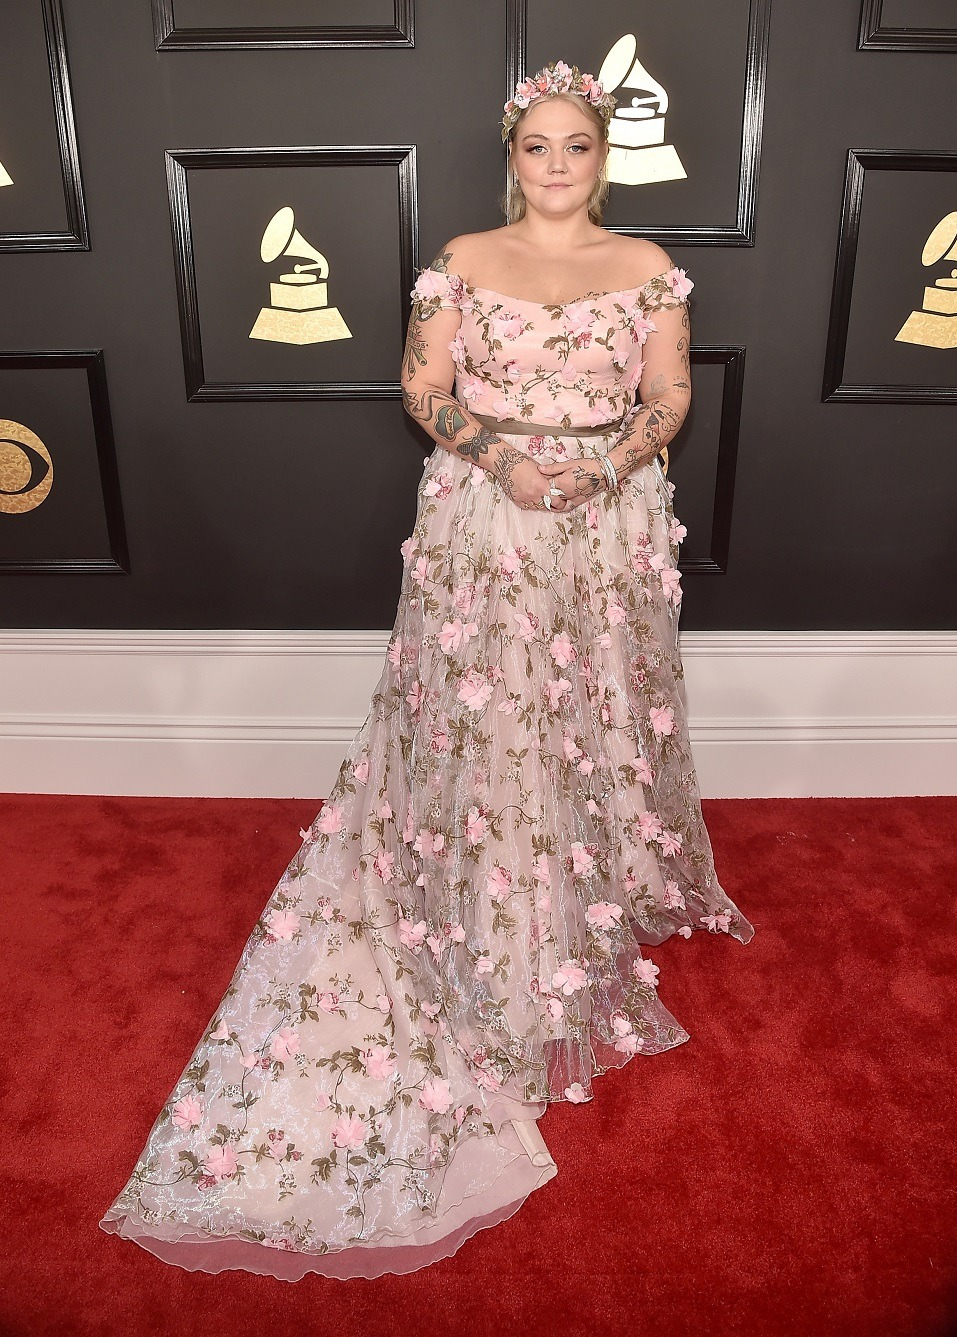 Singer Elle King attends The 59th GRAMMY Awards